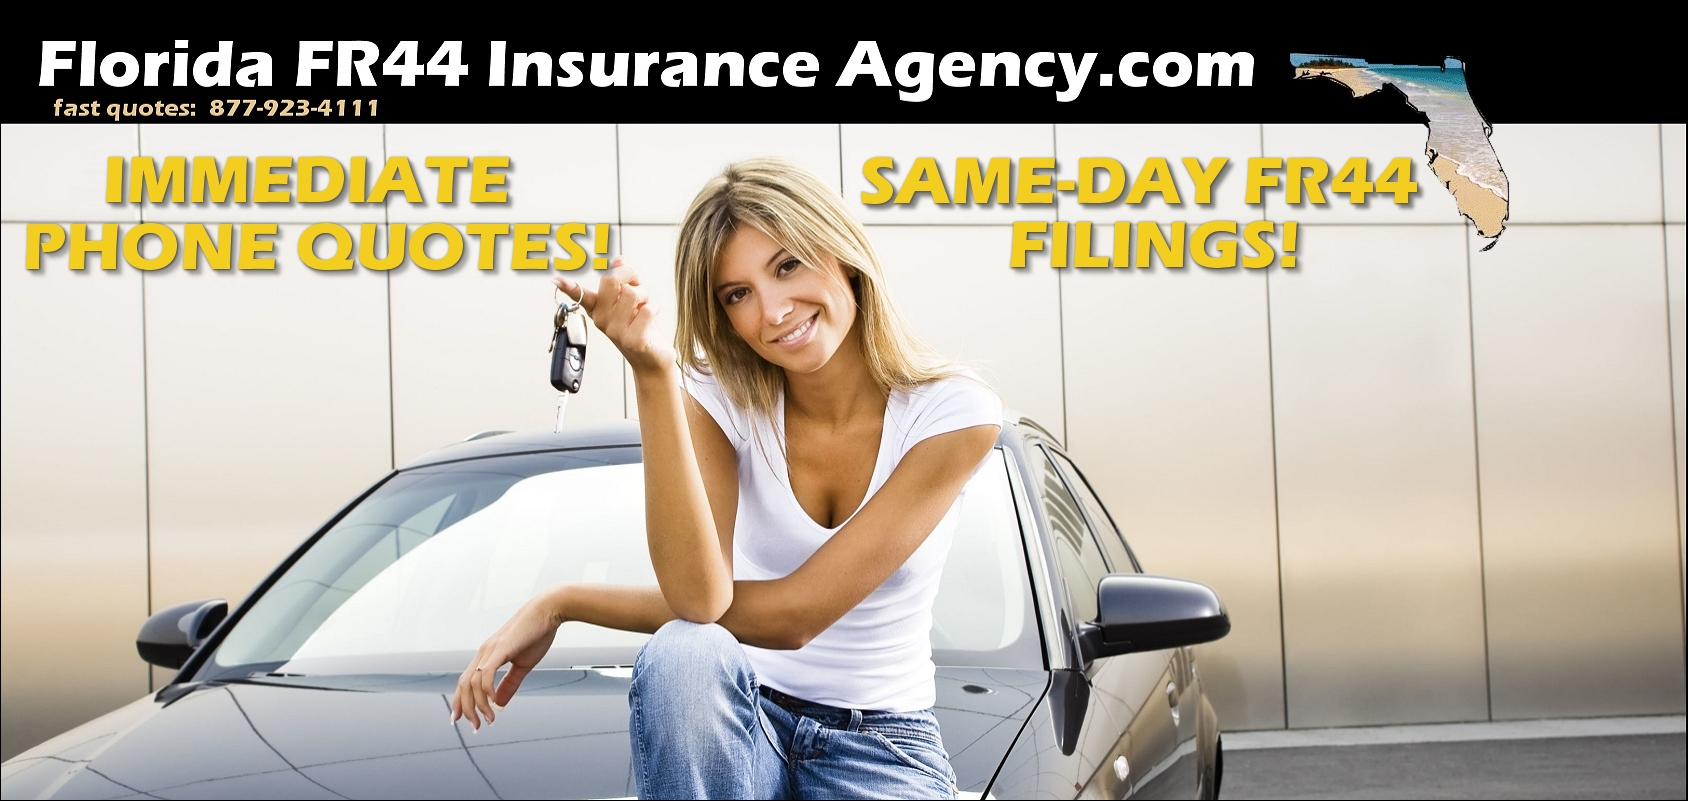 low cost Florida FR44 insurance quotes logo